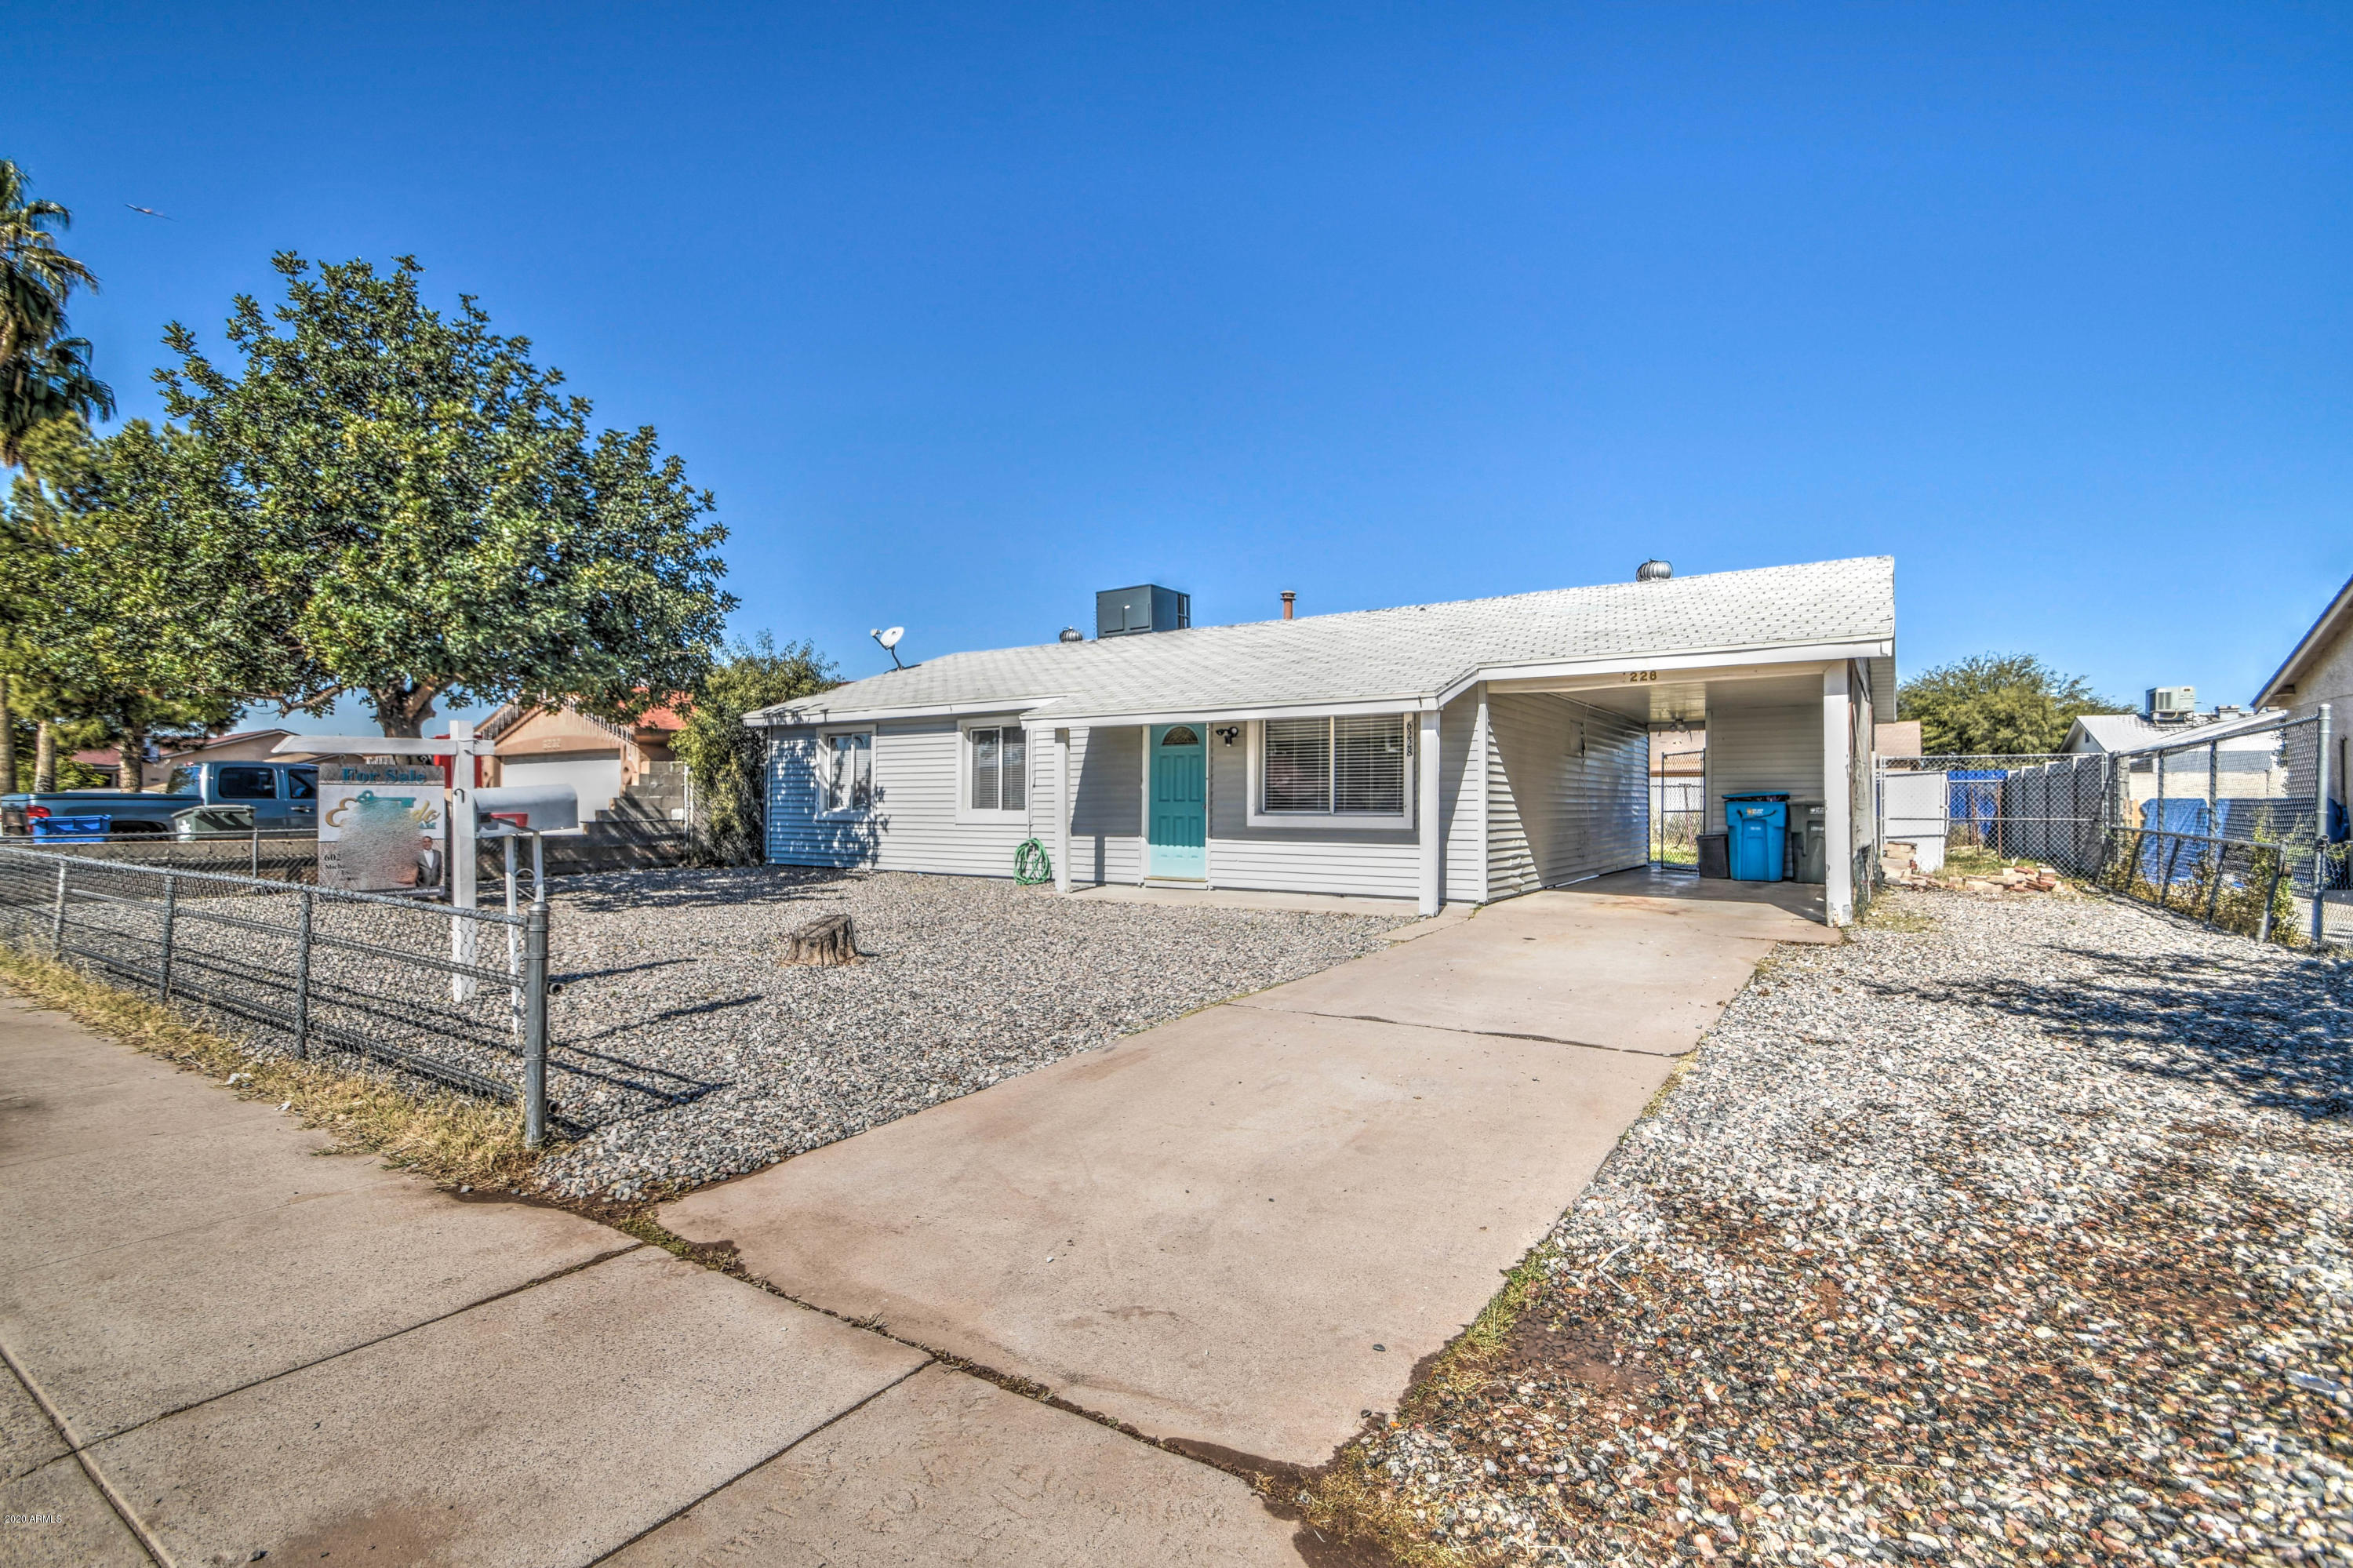 Photo of 6228 W MONTE VISTA Road, Phoenix, AZ 85035